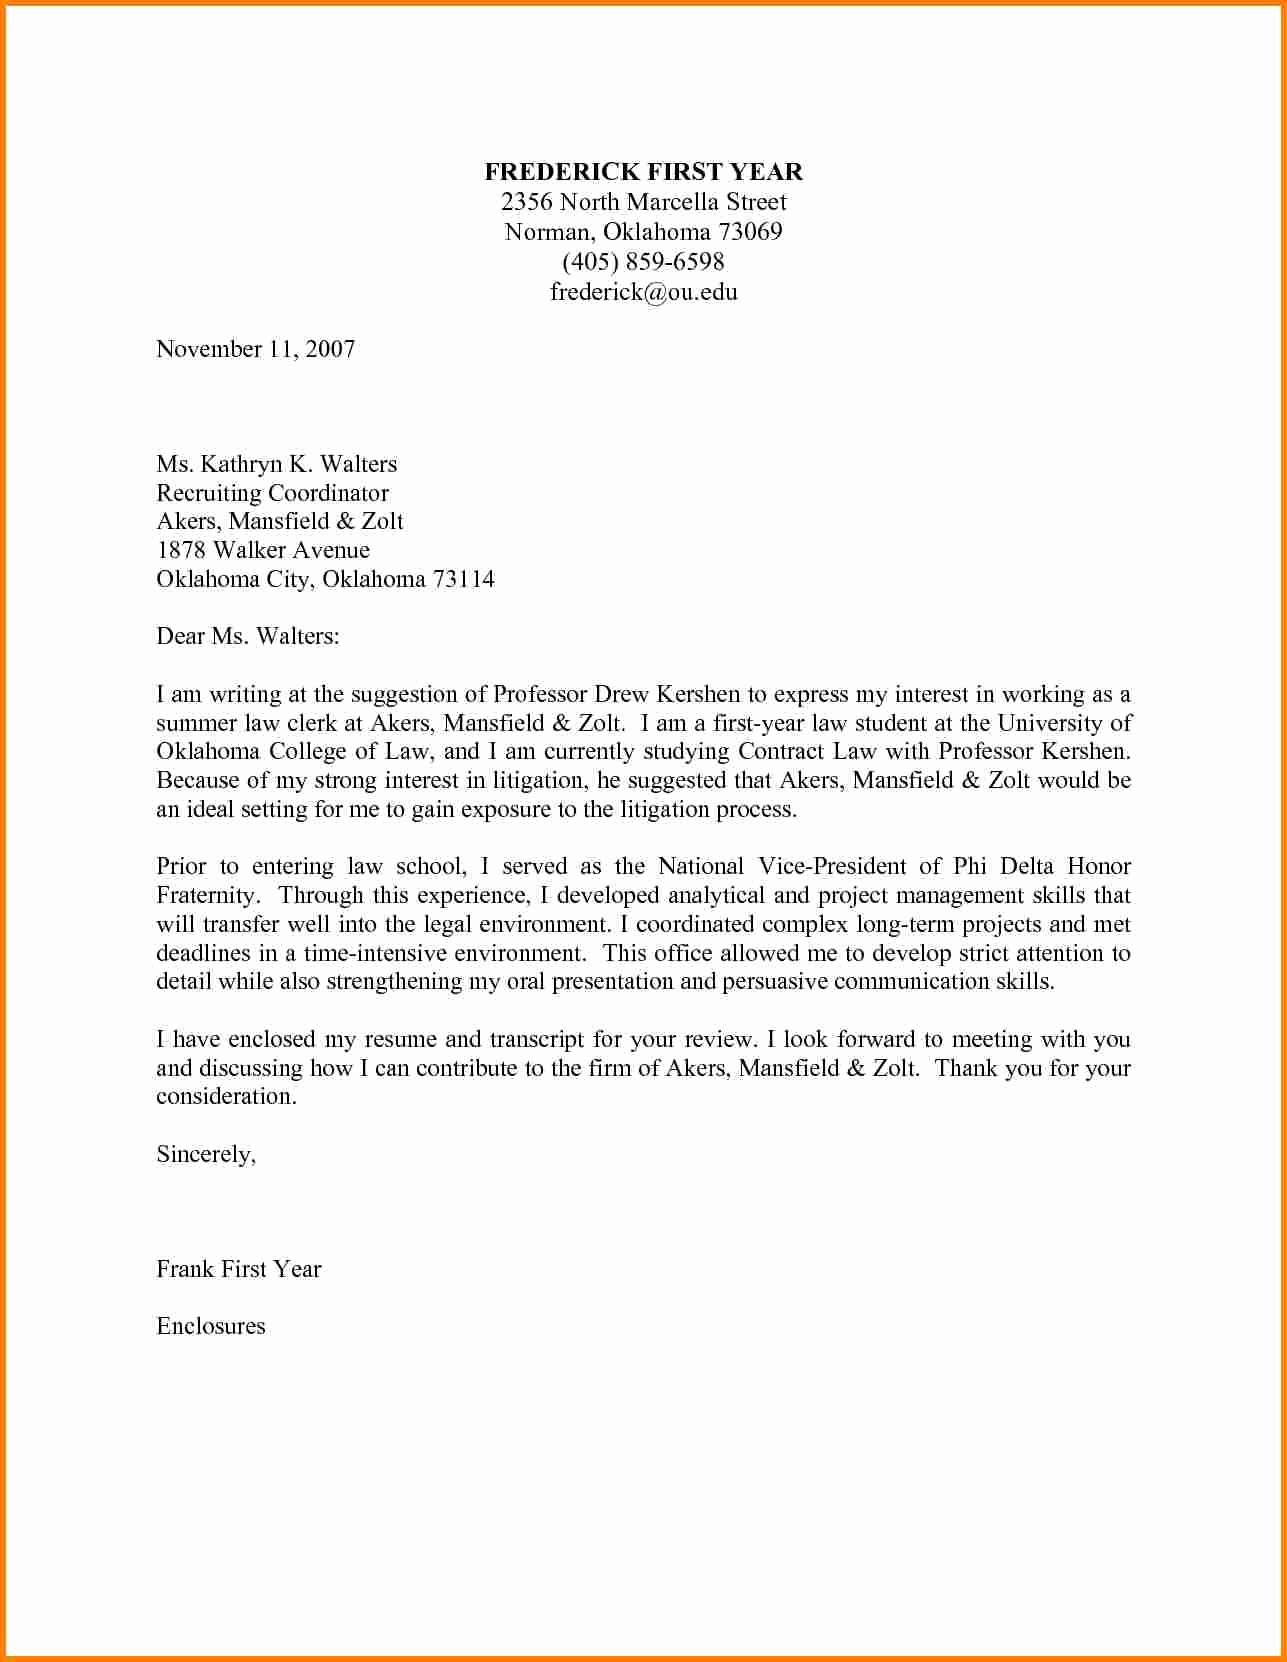 Cover Letter Examples for Promotion Lovely Cover Letter for Promotion Sample Internal Position